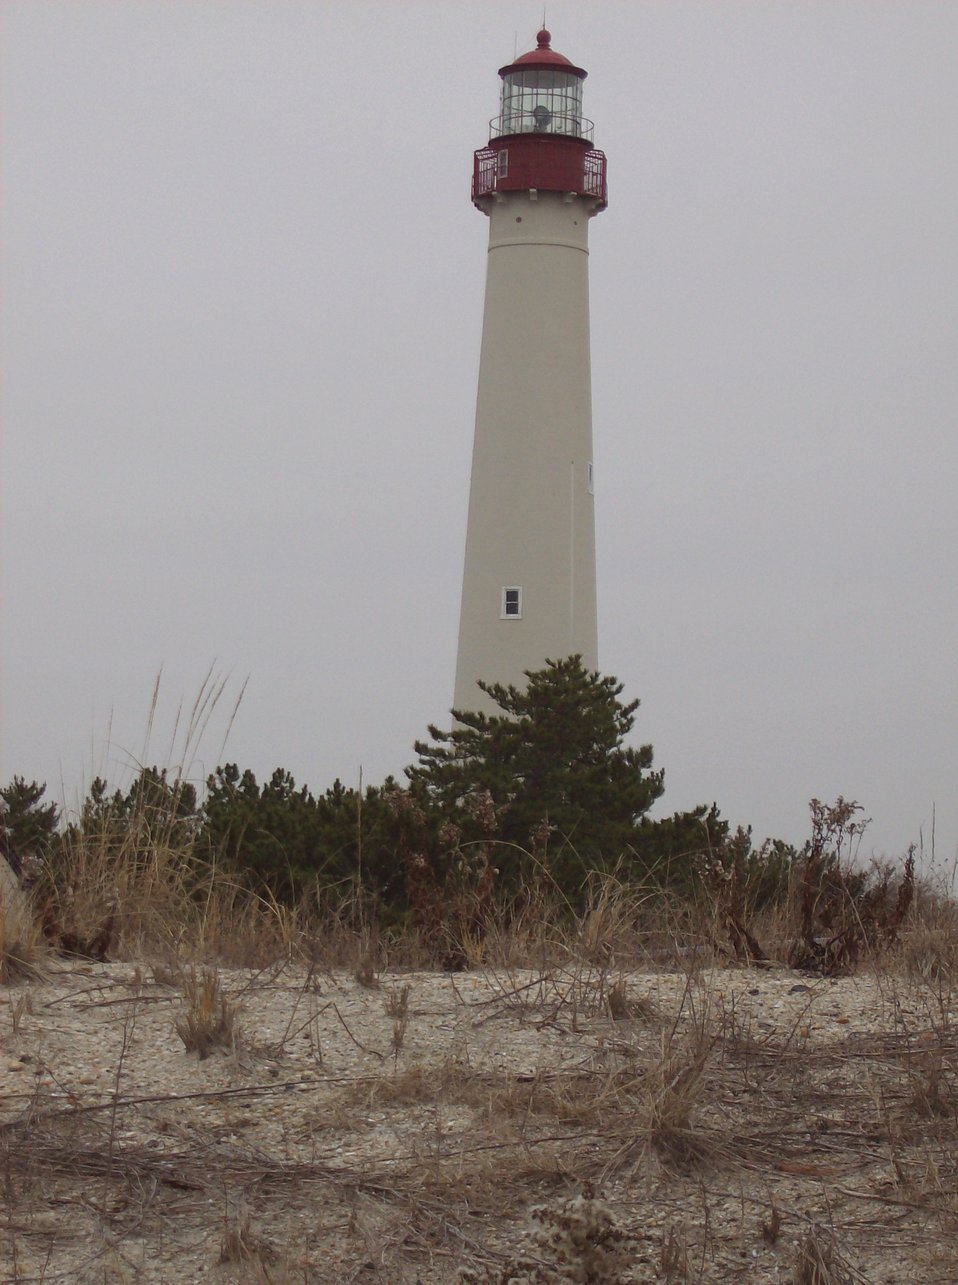 The Cape May Lighthouse standing as a sentinel for Delaware Bay entrance.